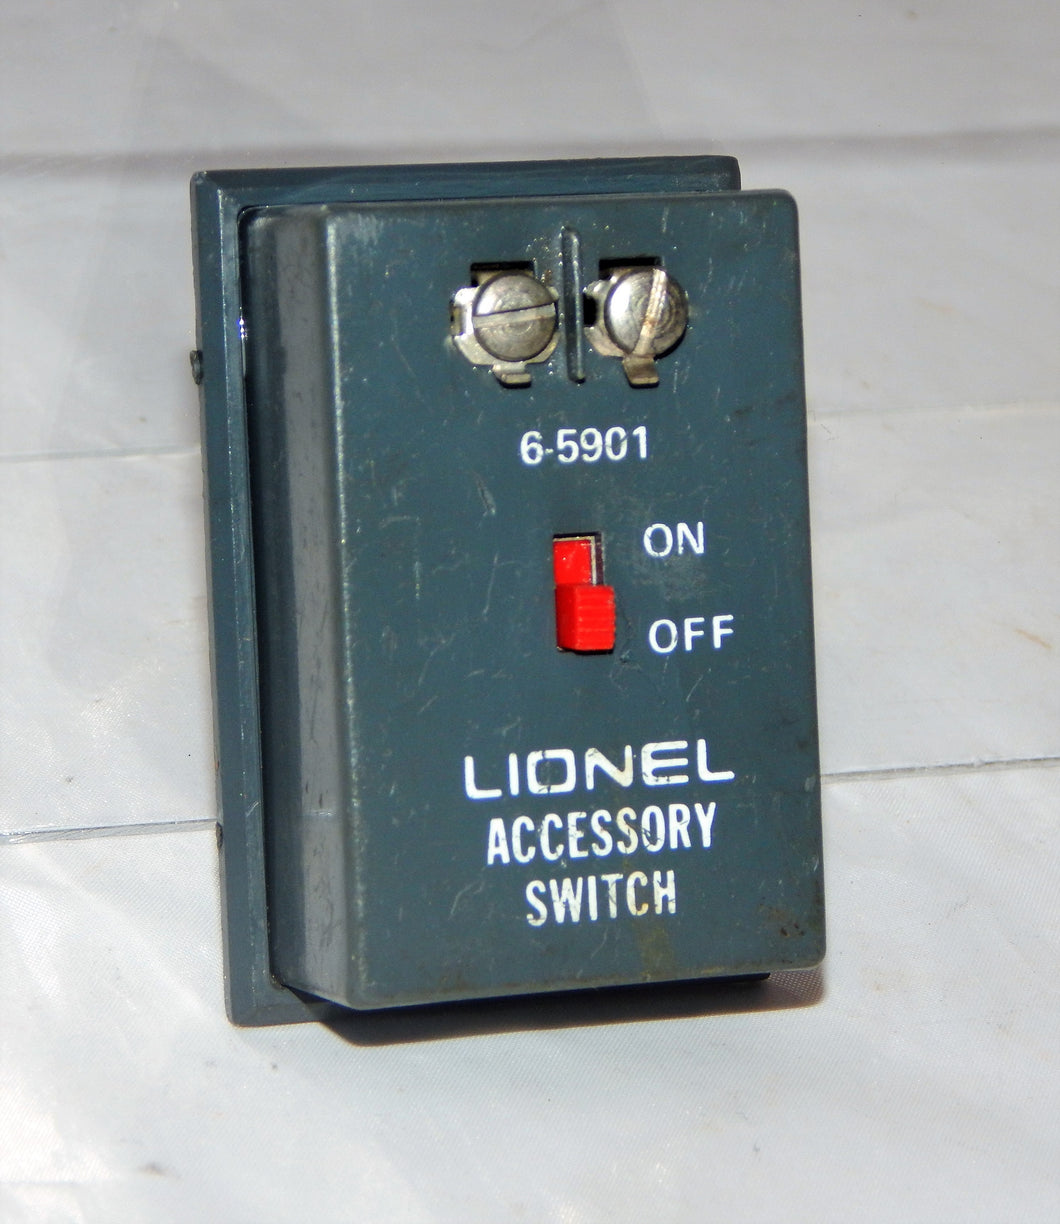 Lionel Trains Part 6-5901 Accessory Switch On/Off Controller sound